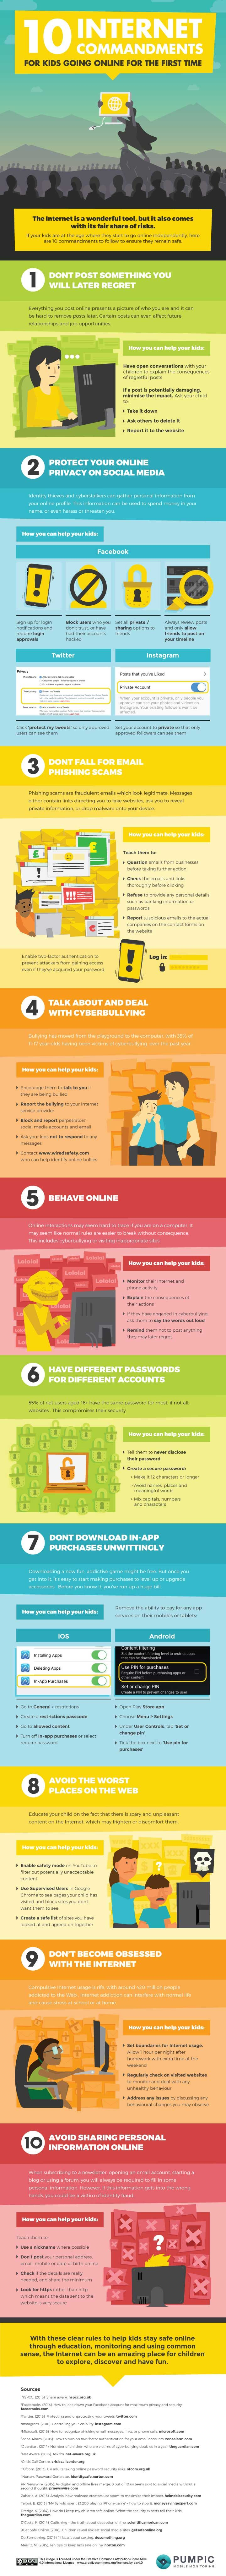 10 Indelible Internet Safety Rules for All of Us to Remember [Infographic]